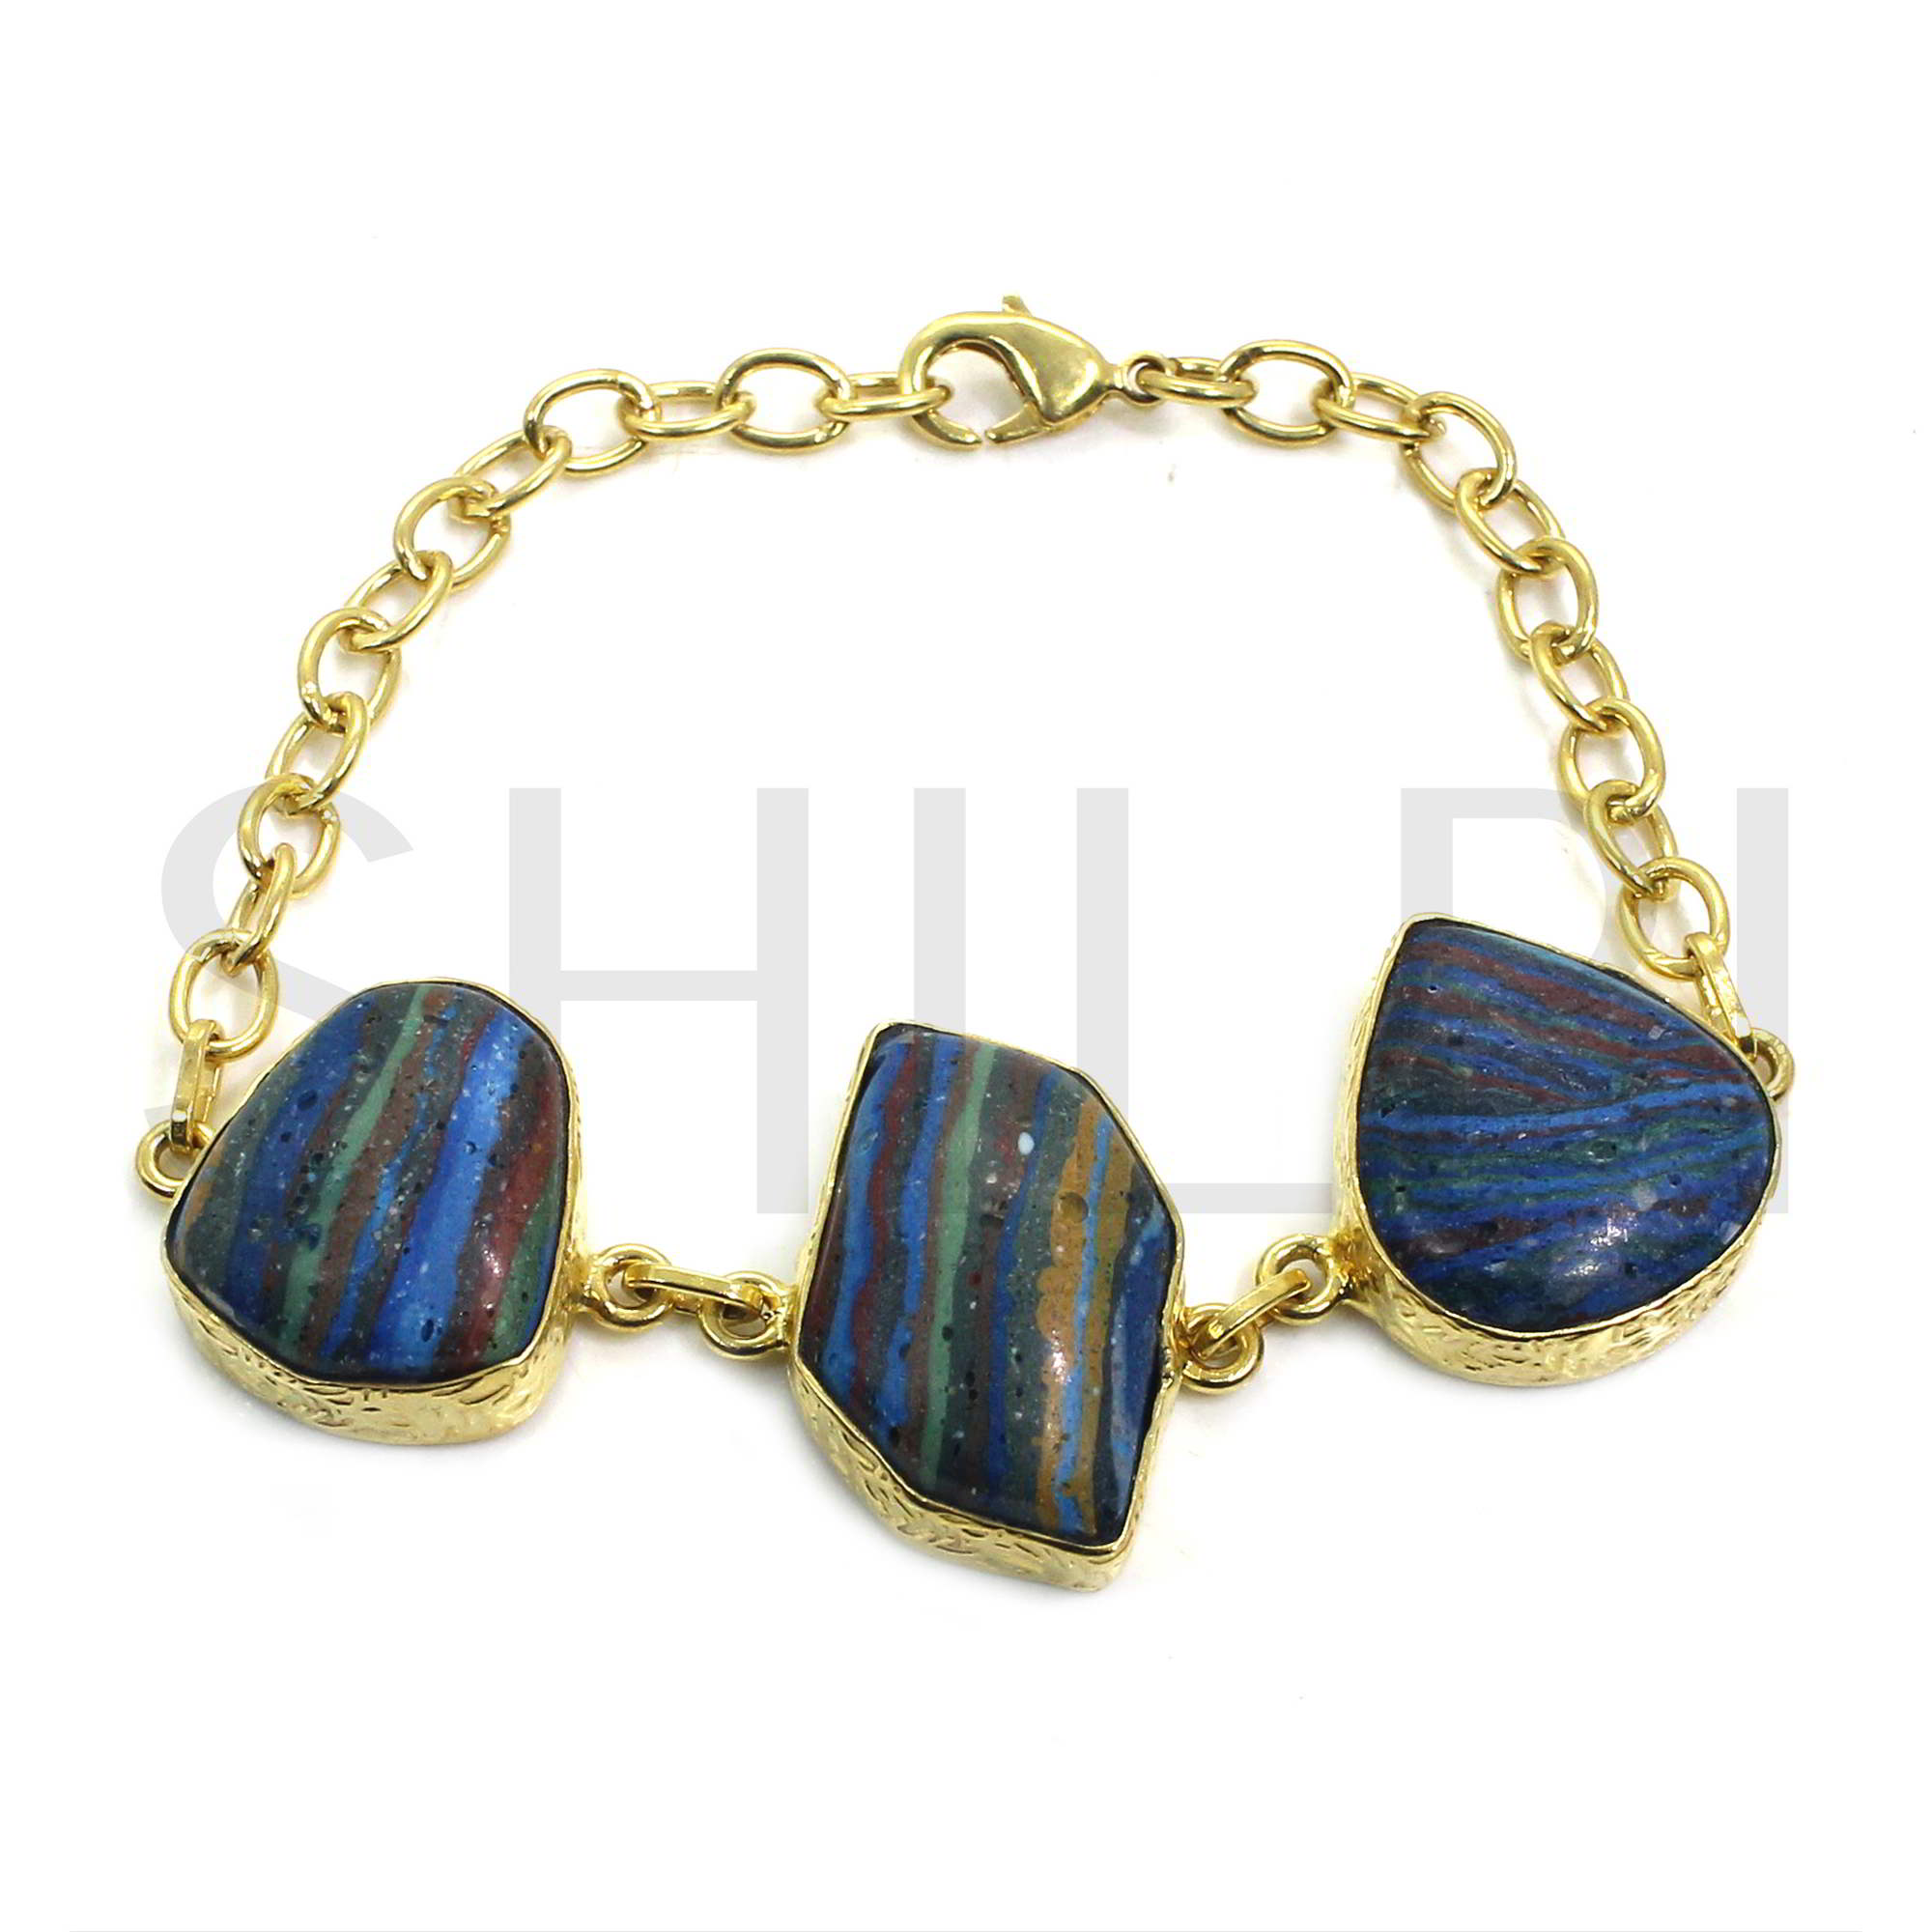 Natural Rainbow Calsilica Gold Plated Link Chain Bracelet